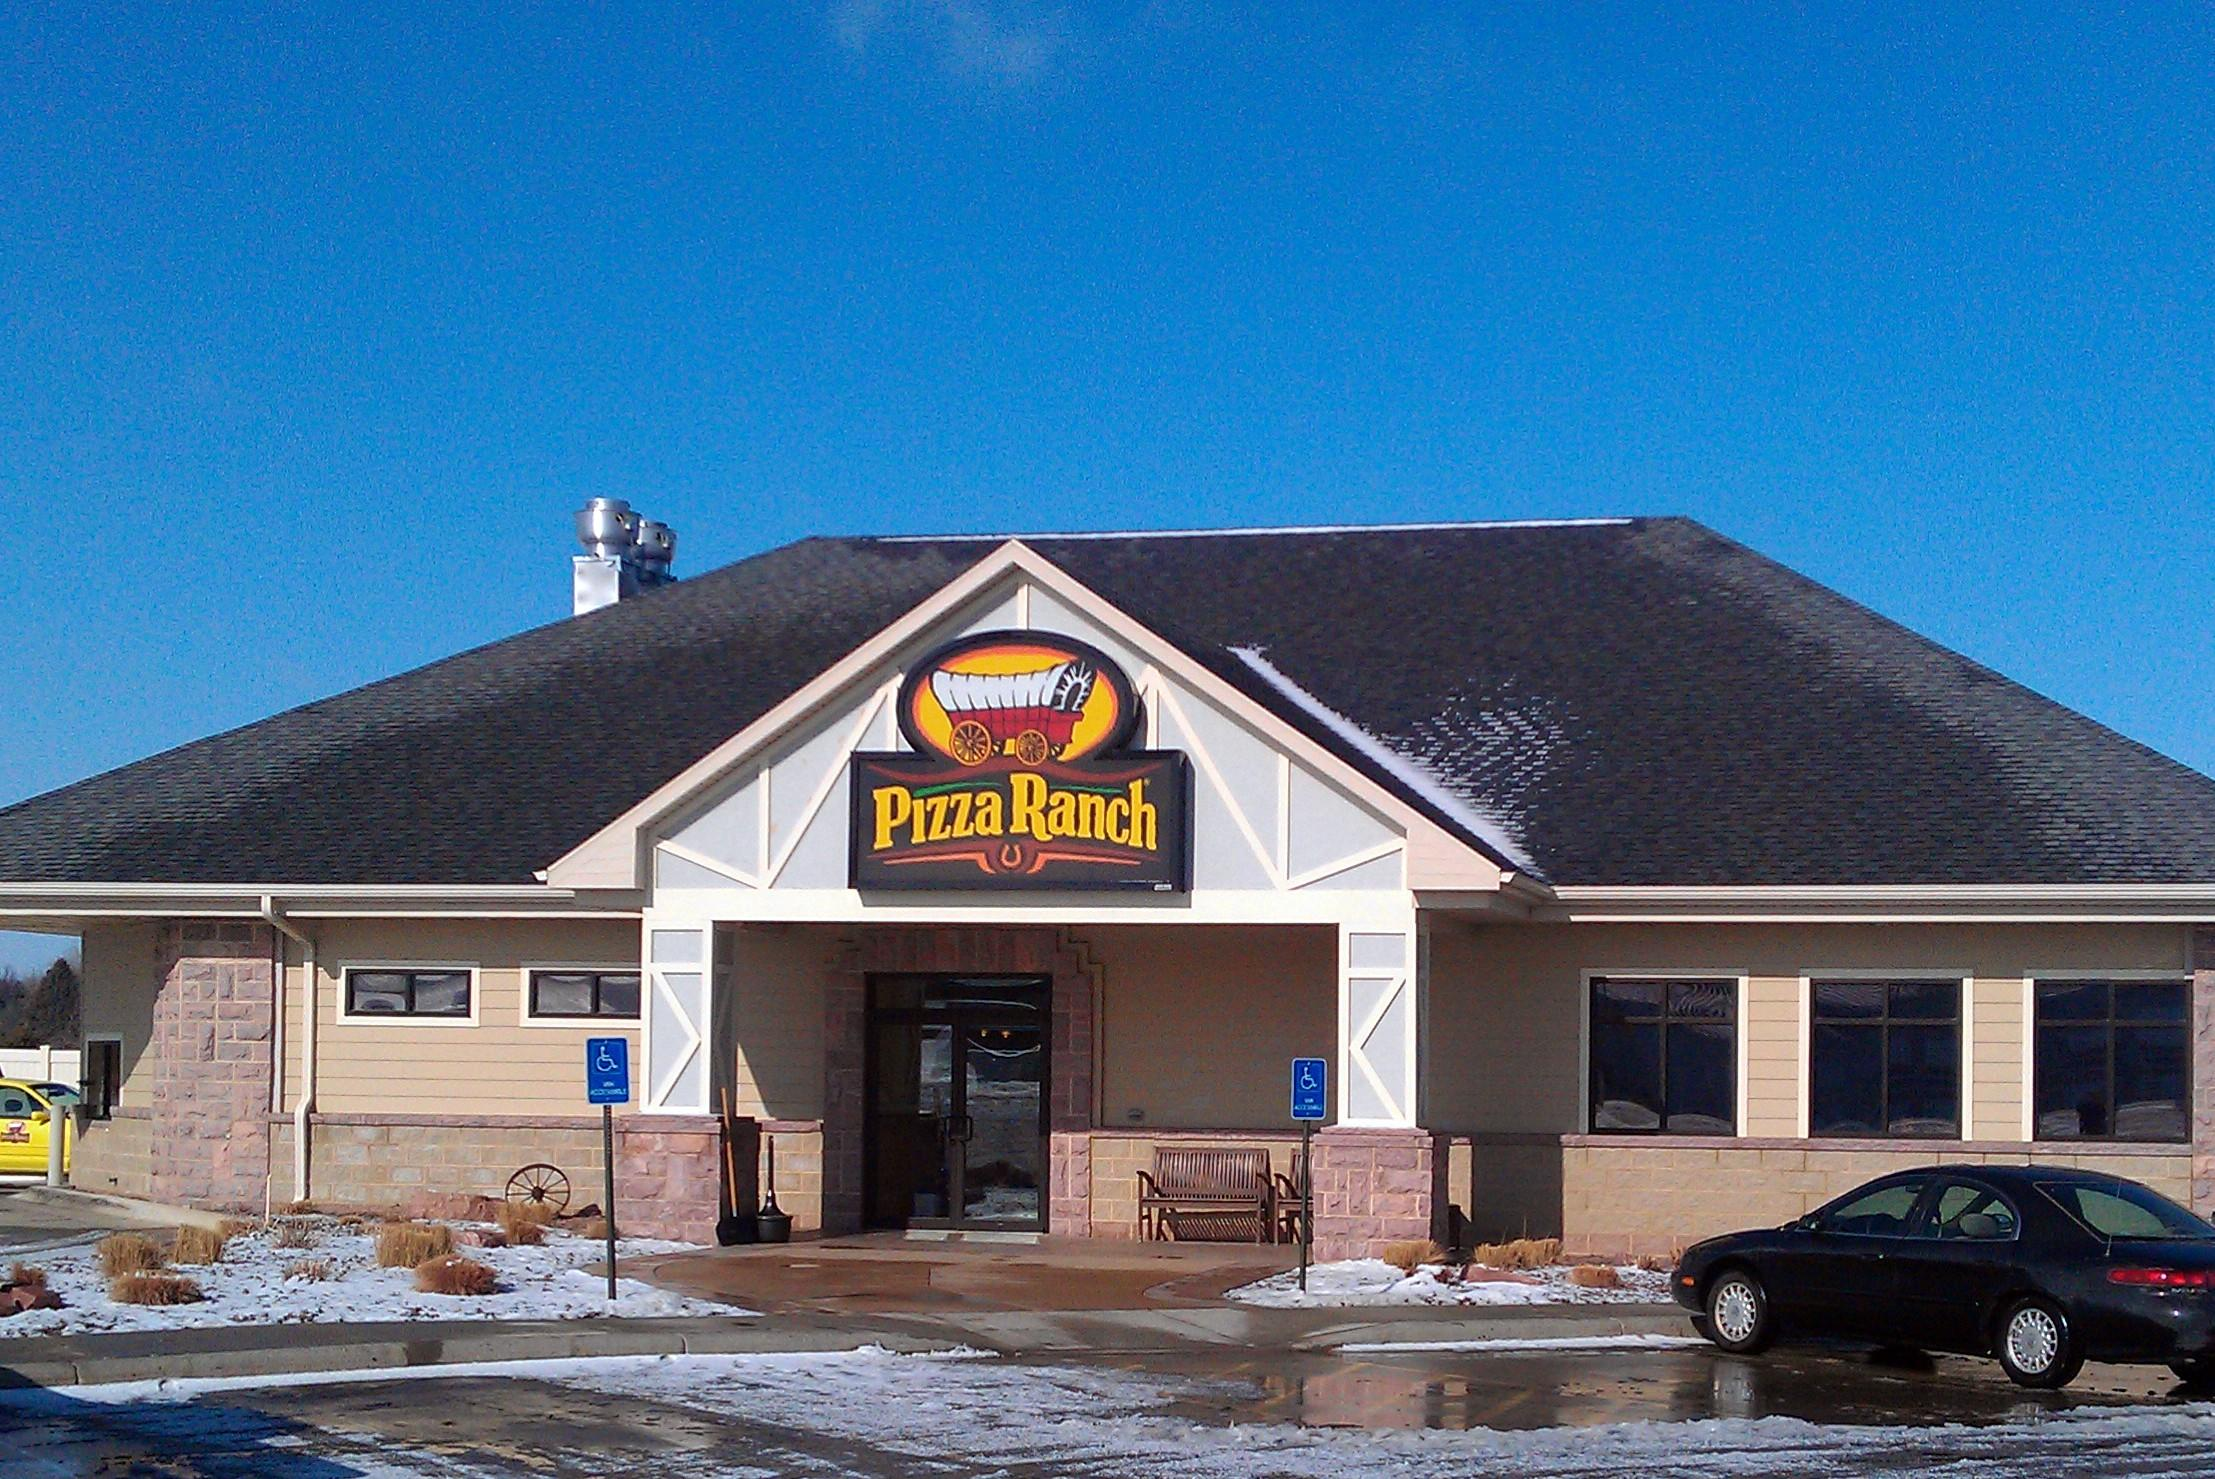 Pizza Ranch, Sioux Falls: See 63 unbiased reviews of Pizza Ranch, rated of 5 on TripAdvisor and ranked #50 of restaurants in Sioux Falls.